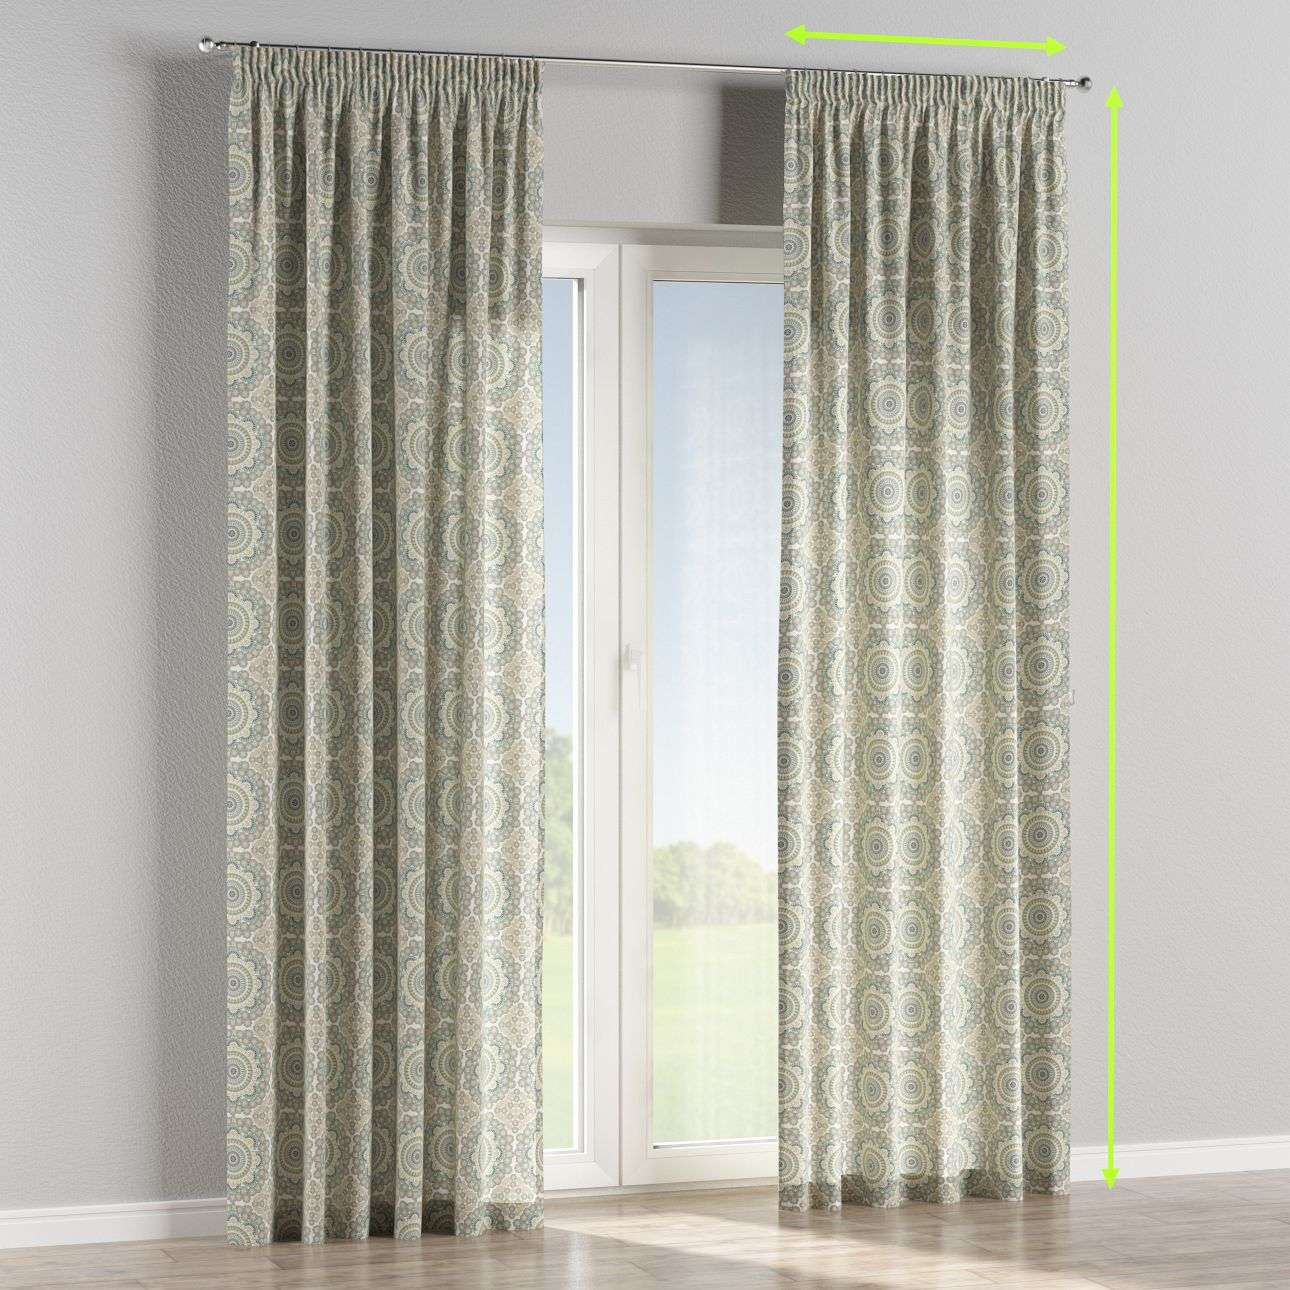 Pencil pleat lined curtains in collection Comic Book & Geo Prints, fabric: 137-84